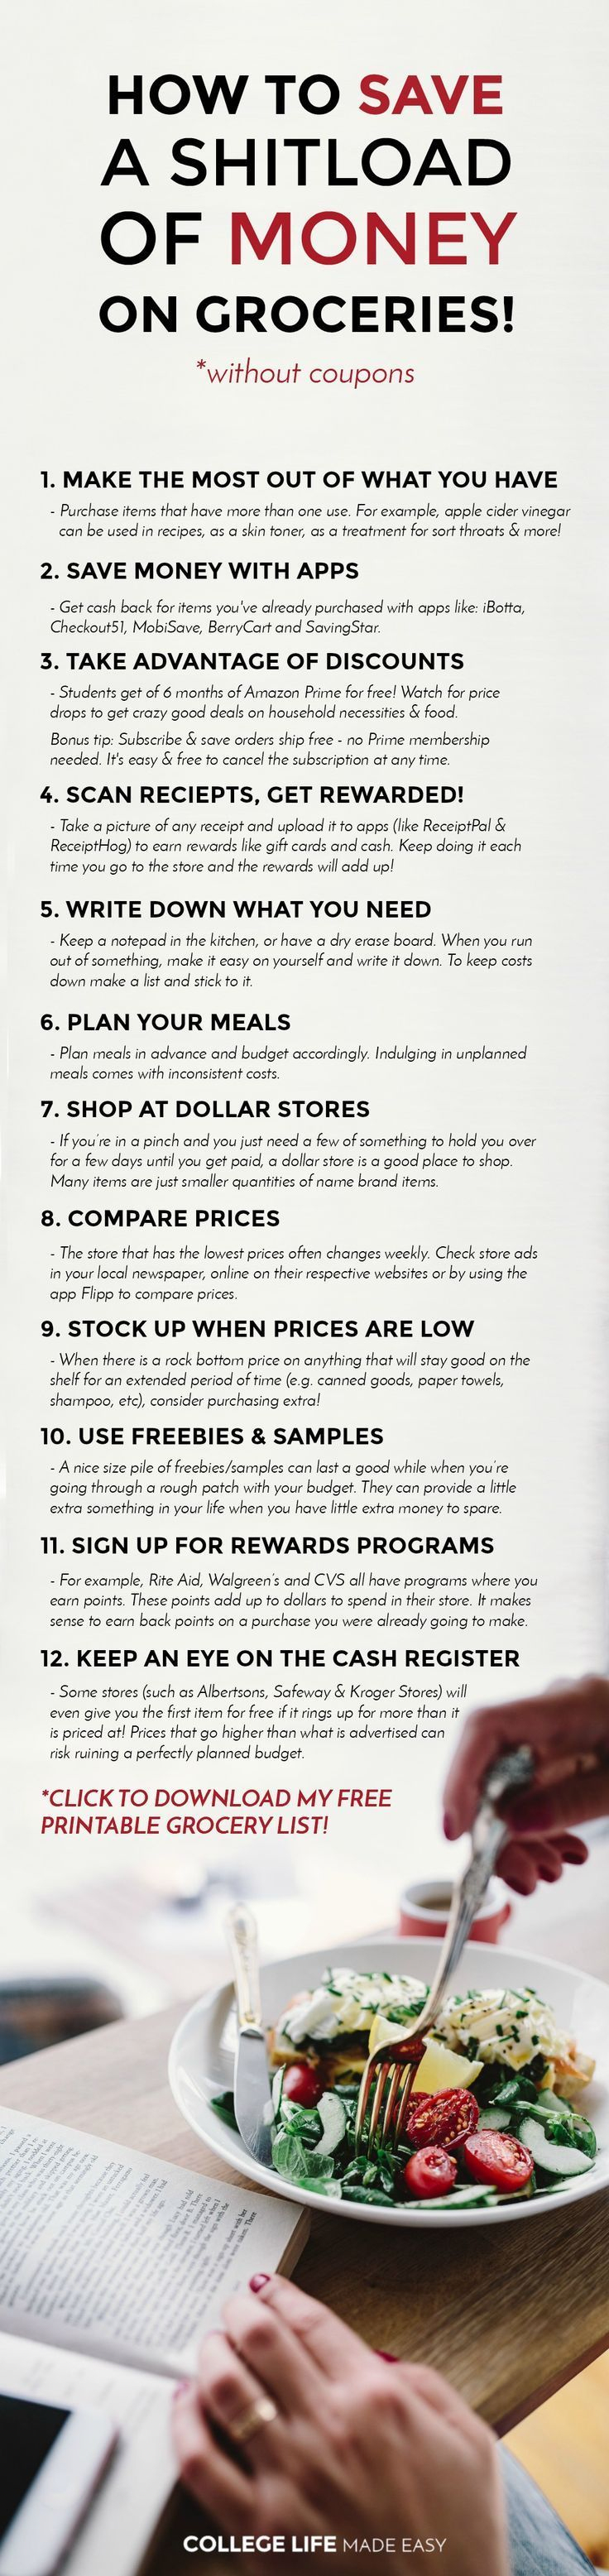 12 Ways To Save Money On Groceries! (Without Coupons) | Free - Free Printable Coupons Without Downloads